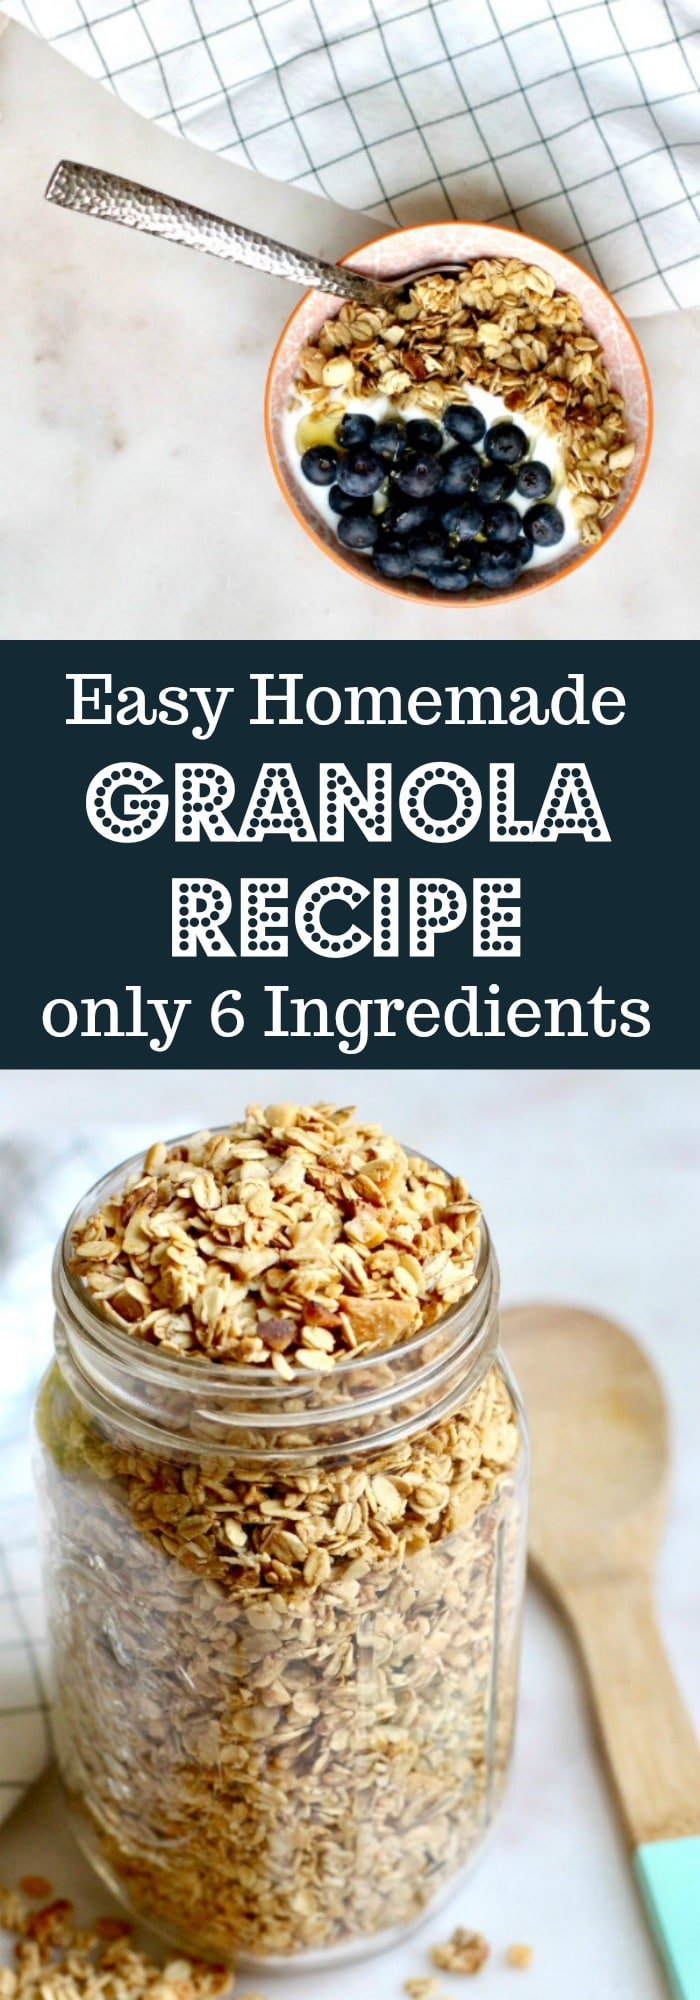 Easy Homemade Granola Recipe Only 6 Ingredients